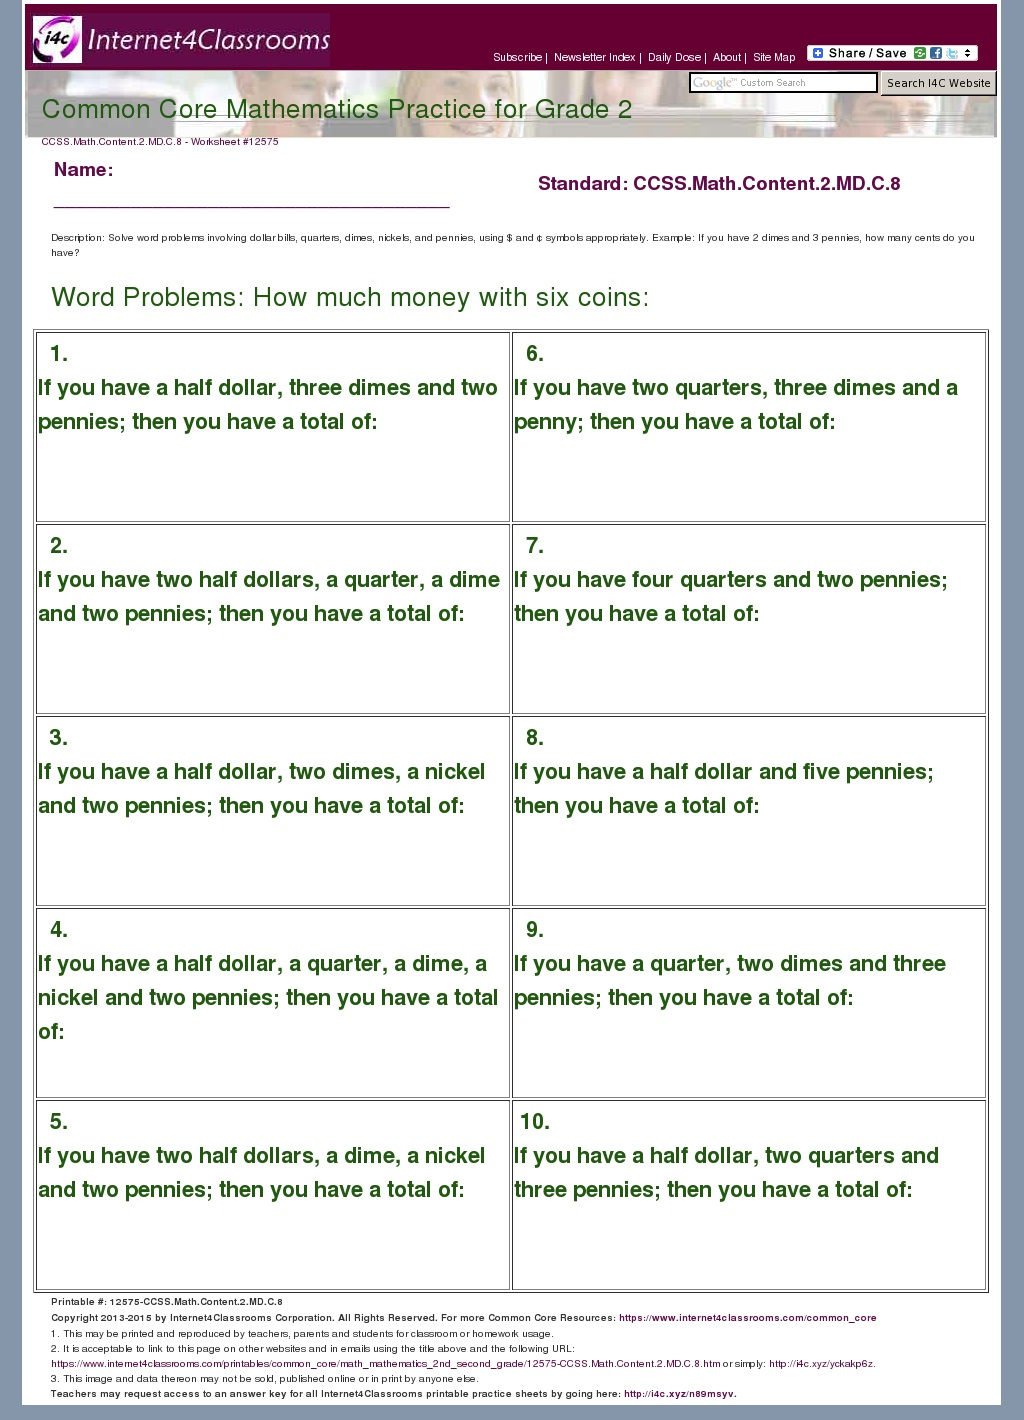 DescriptionDownload Worksheet 12575 CCSSMathContent2MDC8 – Common Core Math Practice Worksheets